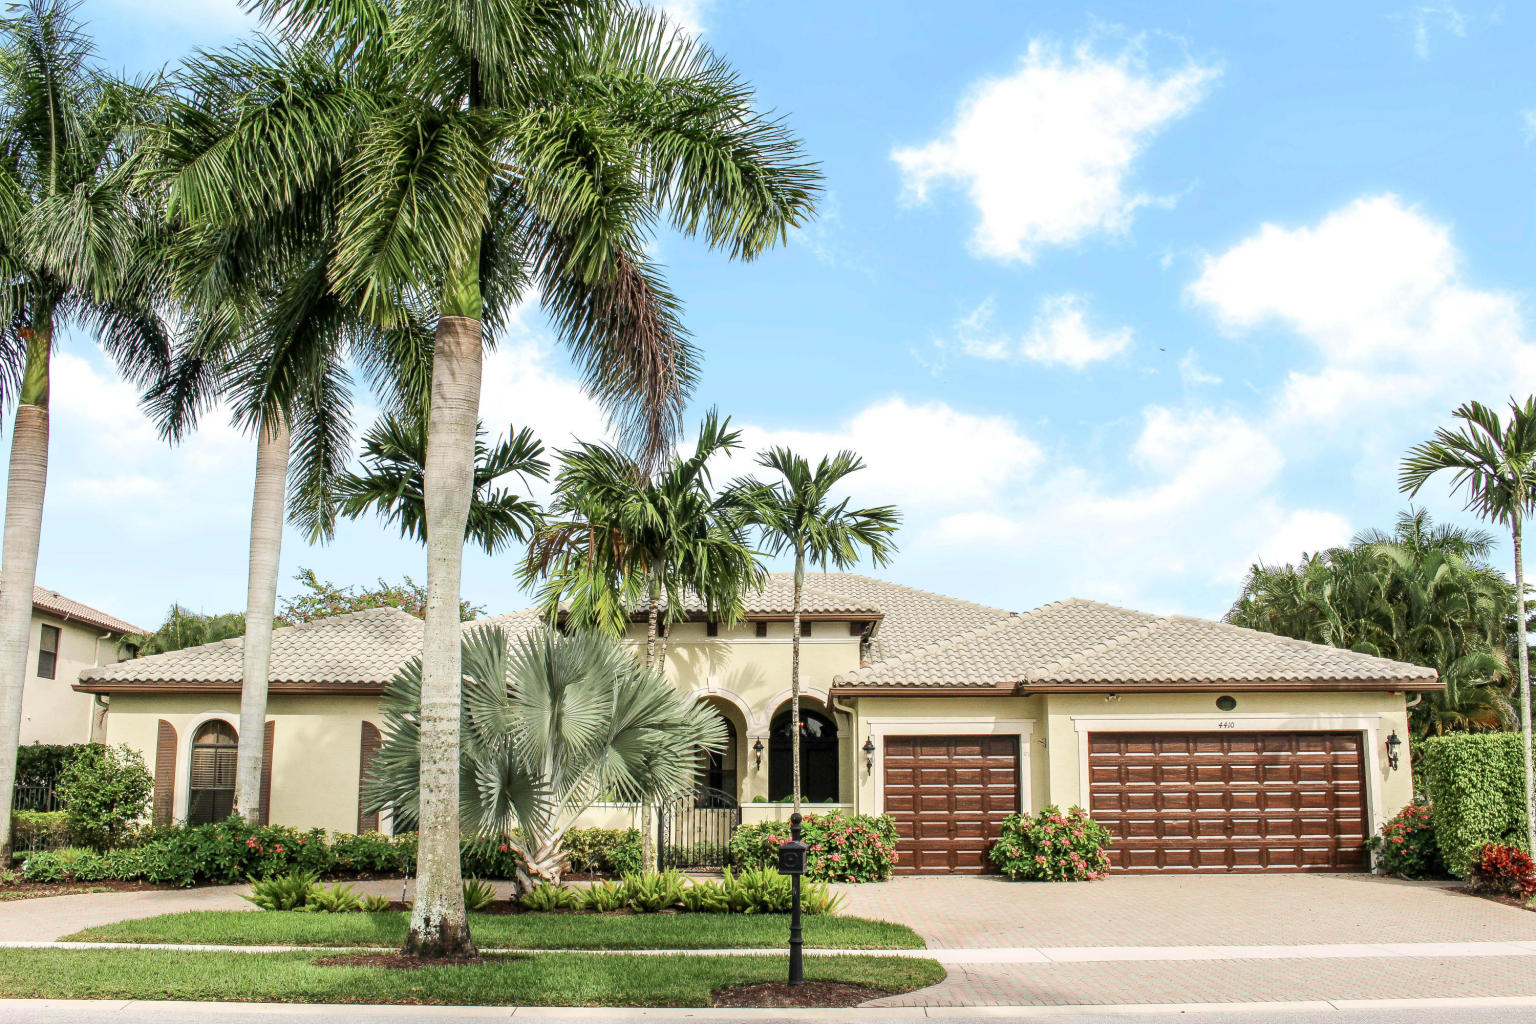 4410 Island Reef Dr, Wellington FL 33414